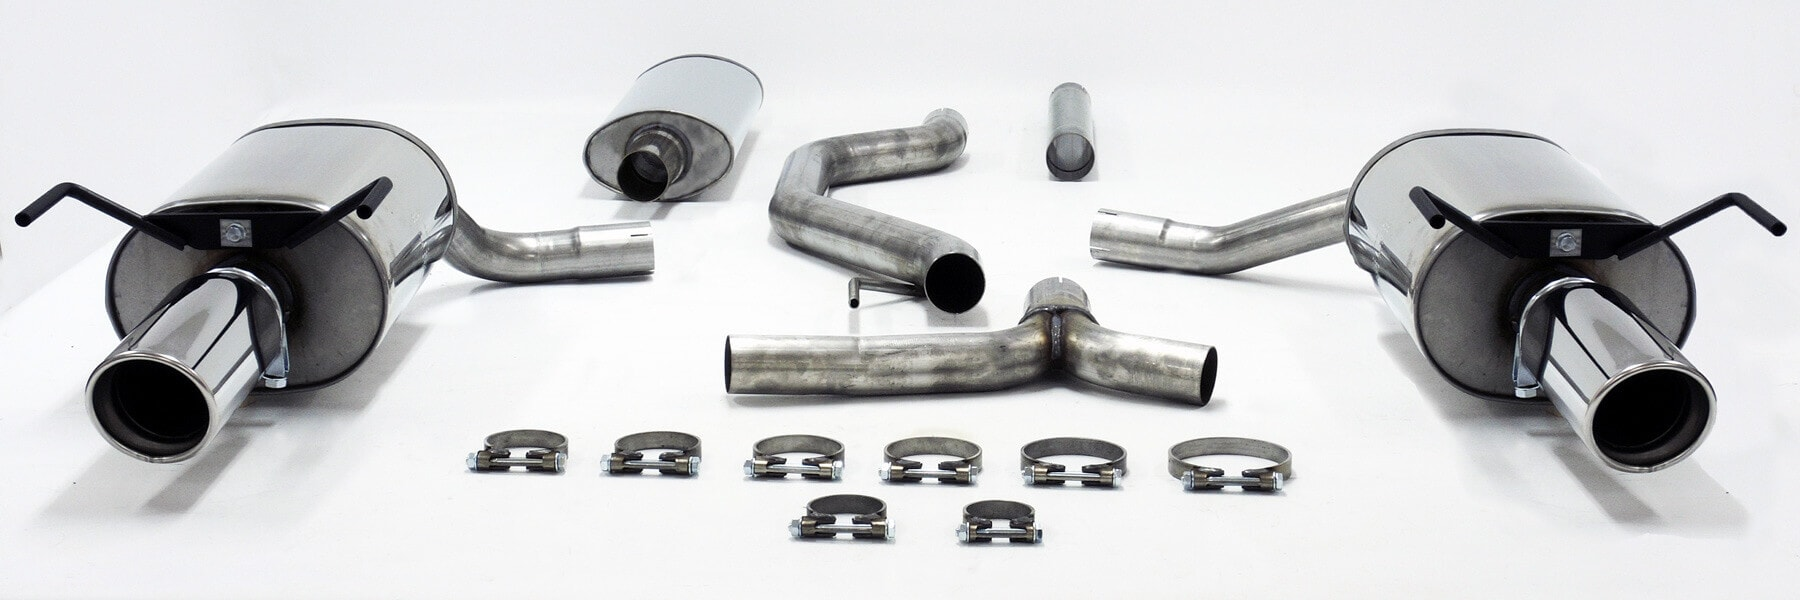 saab 9 3 2 0t 2 8t aero jetex performance stainless steel cat back exhaust system with dual round 100mm tail pipes